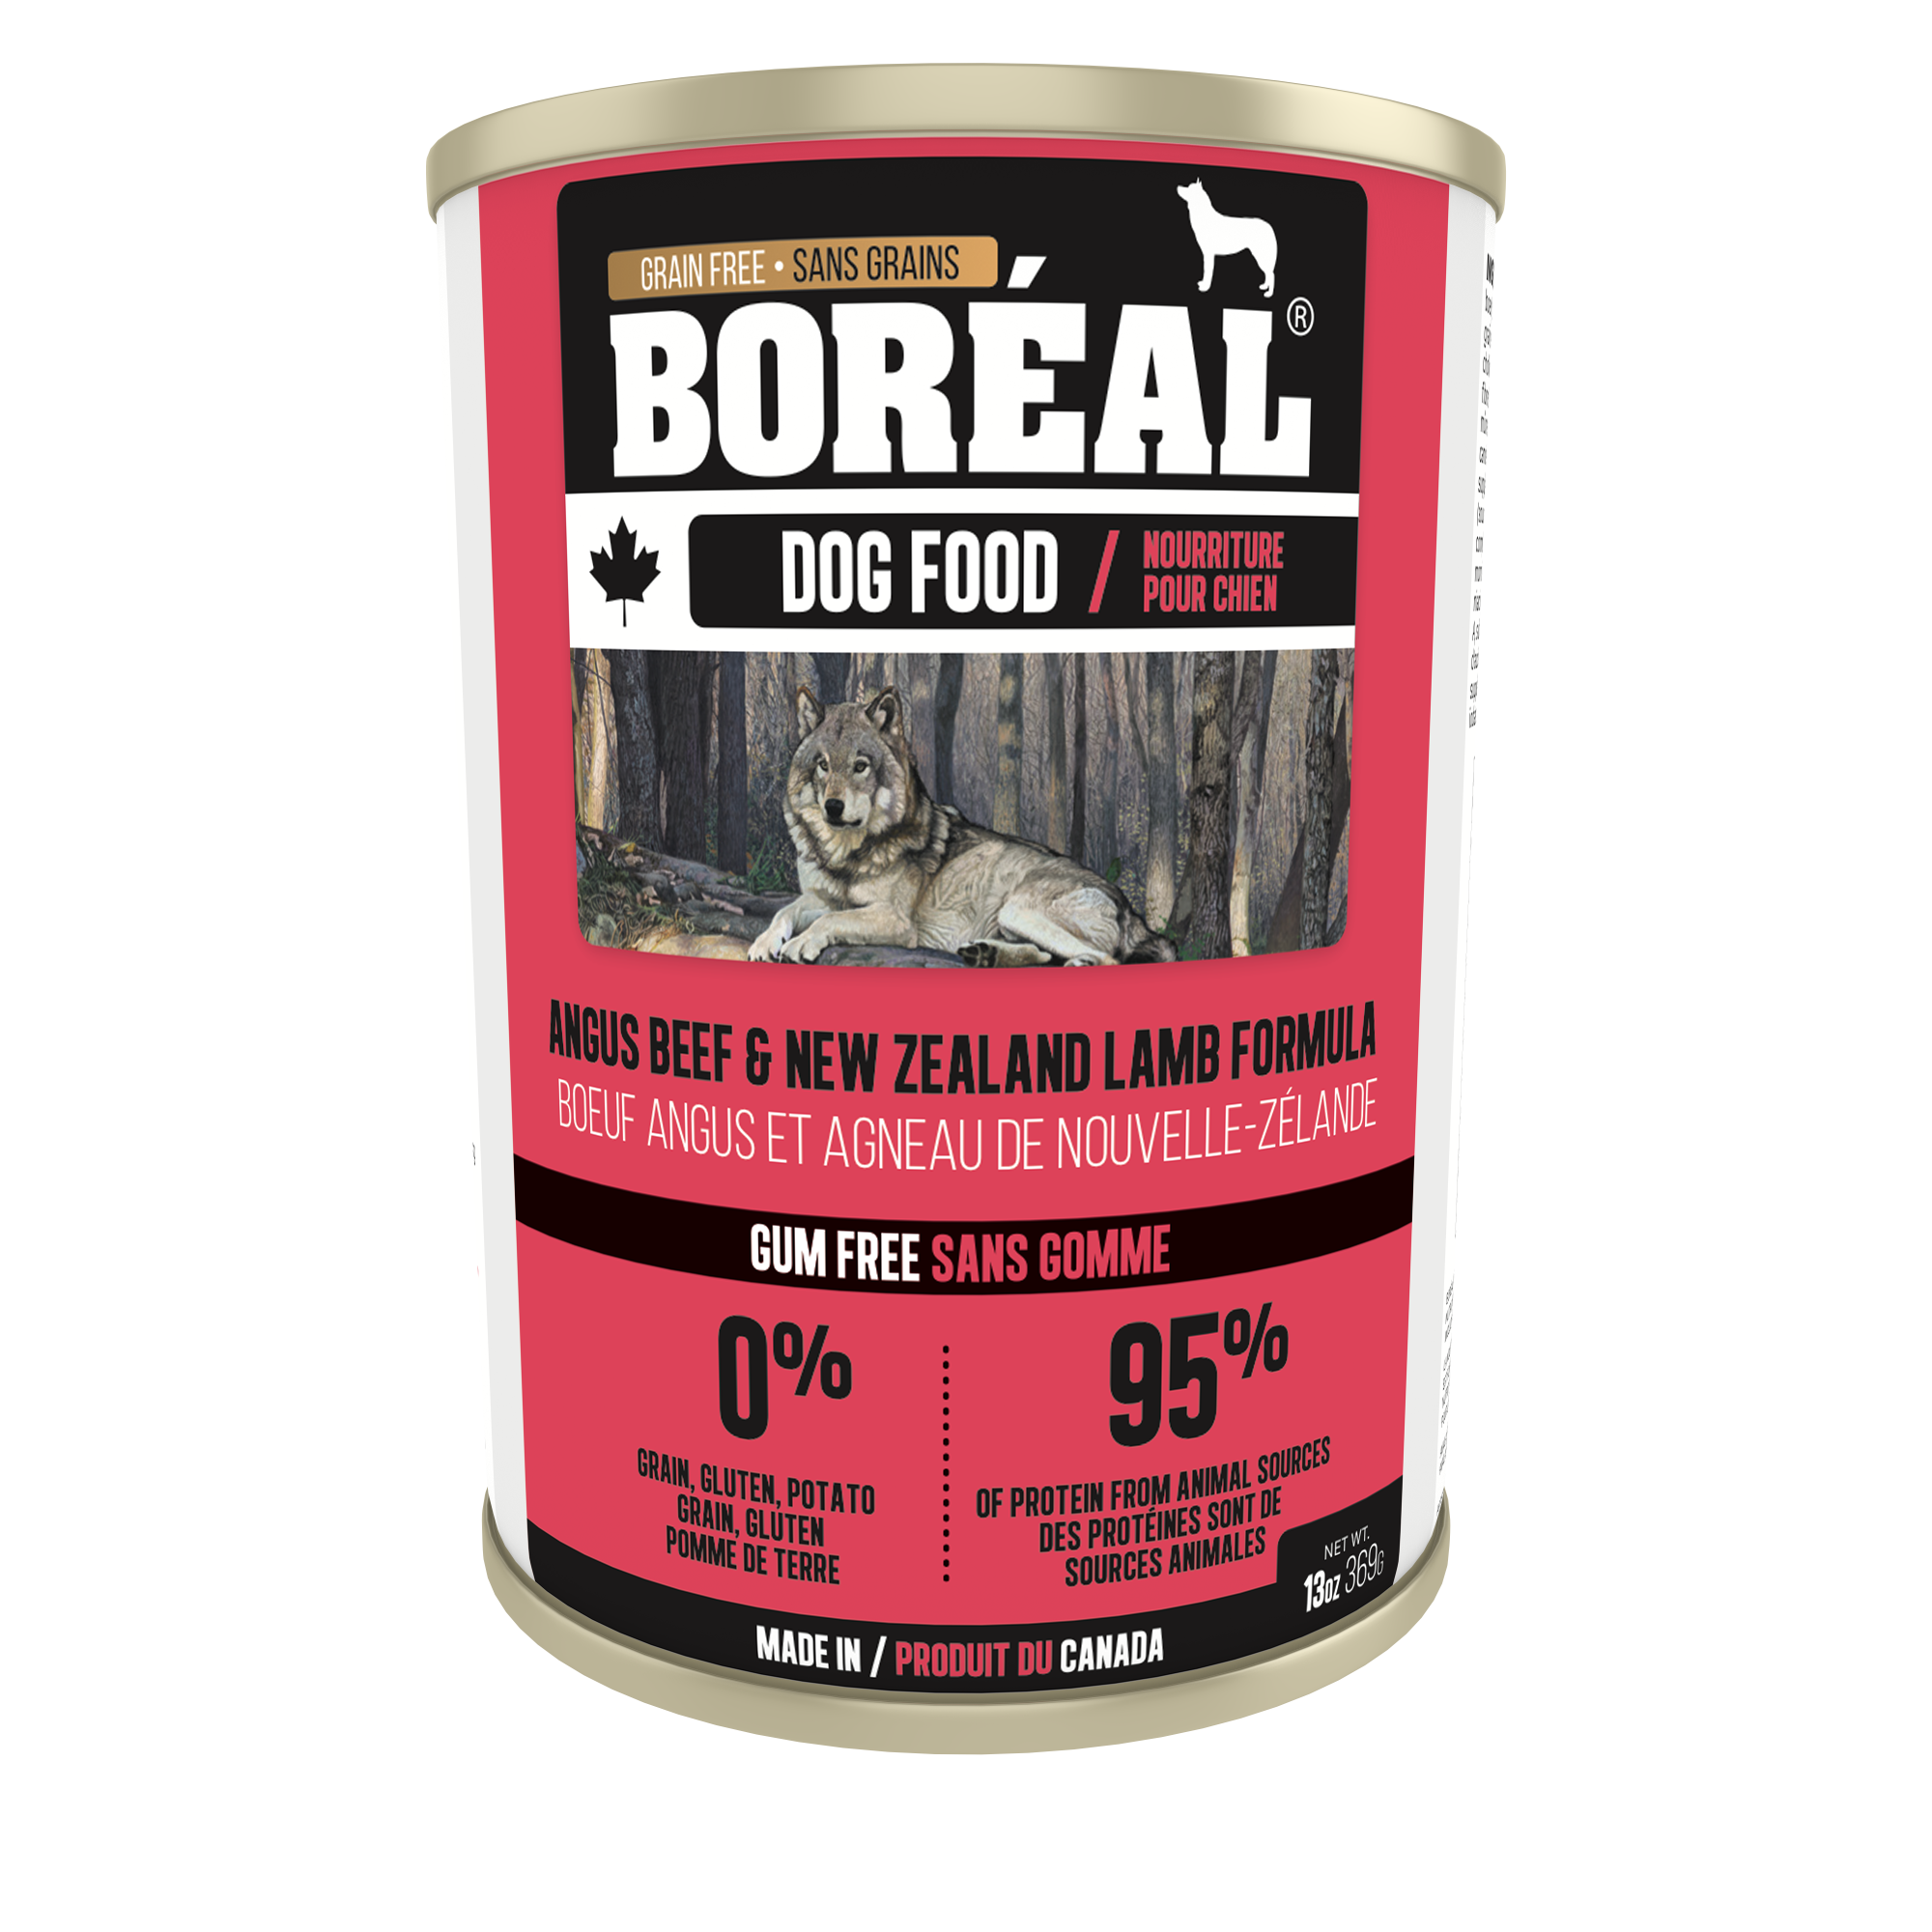 Boreal Grain-Free Canadian Angus Beef and New Zealand Lamb Formula Canned Dog Food, 369g can